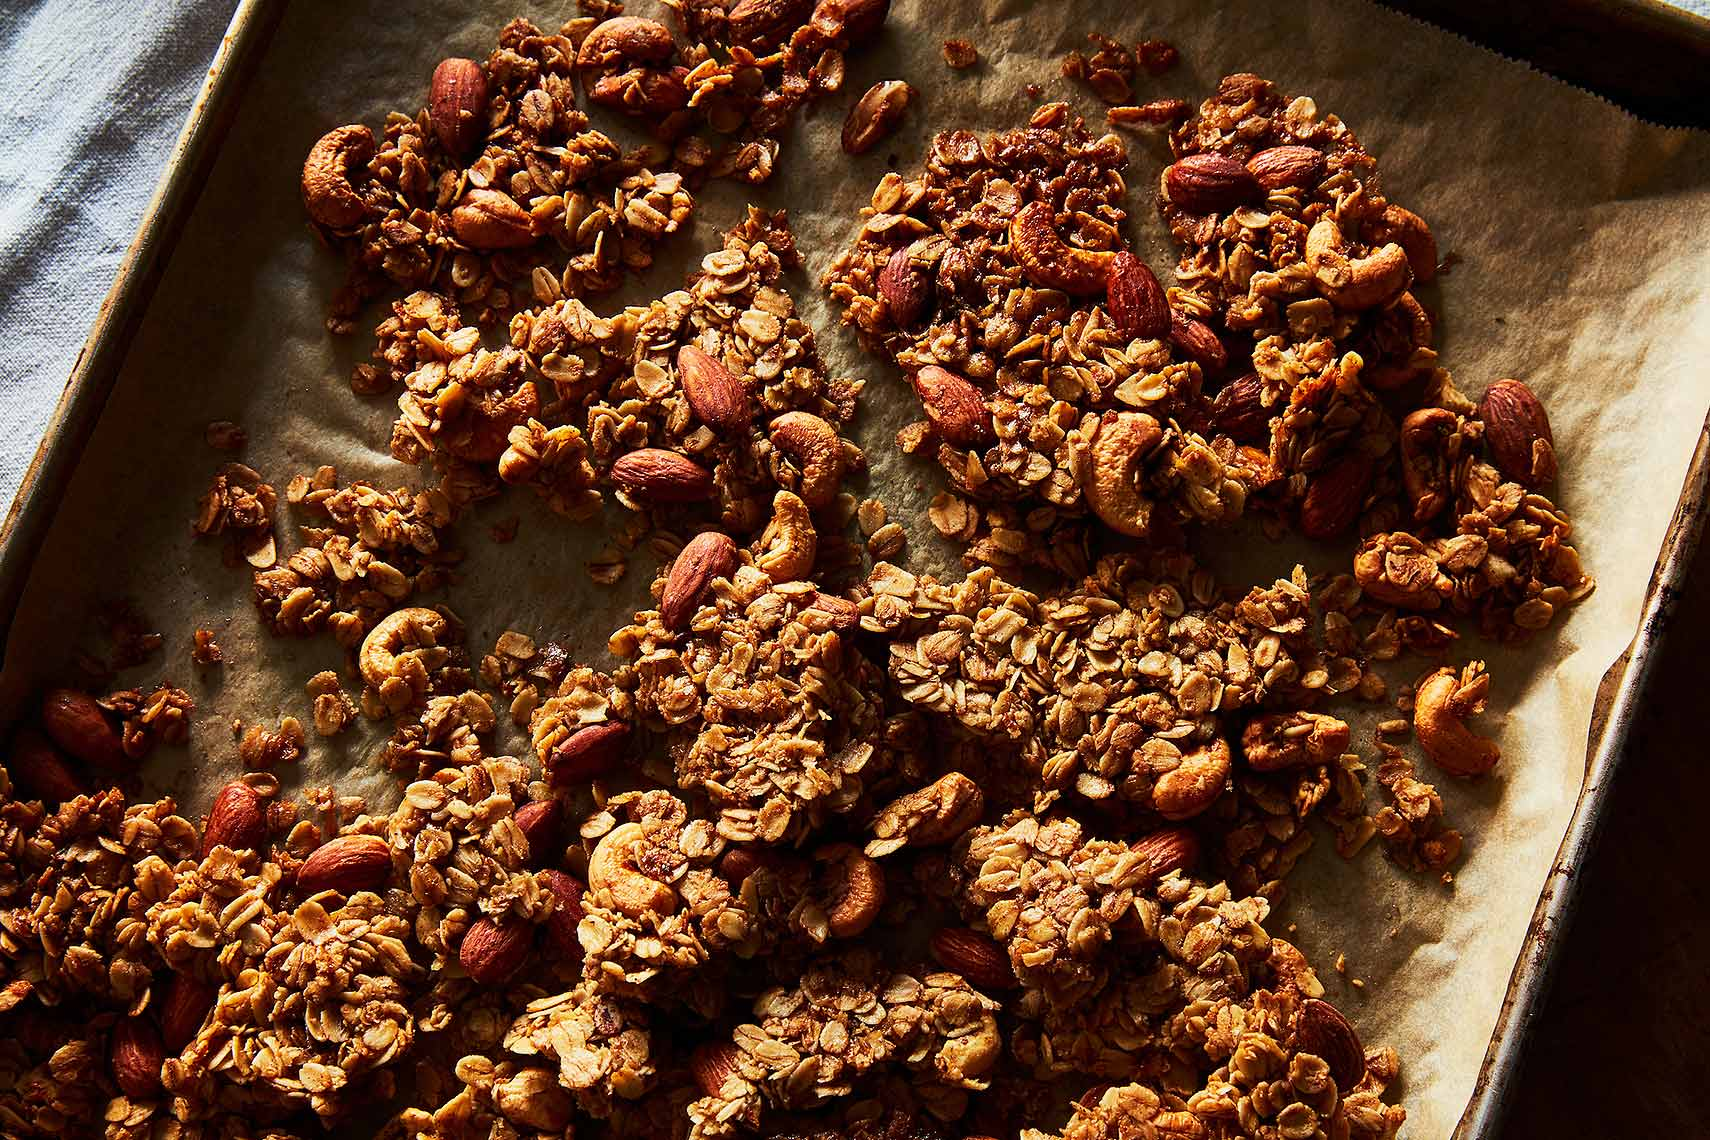 homemade granola with extra clumps